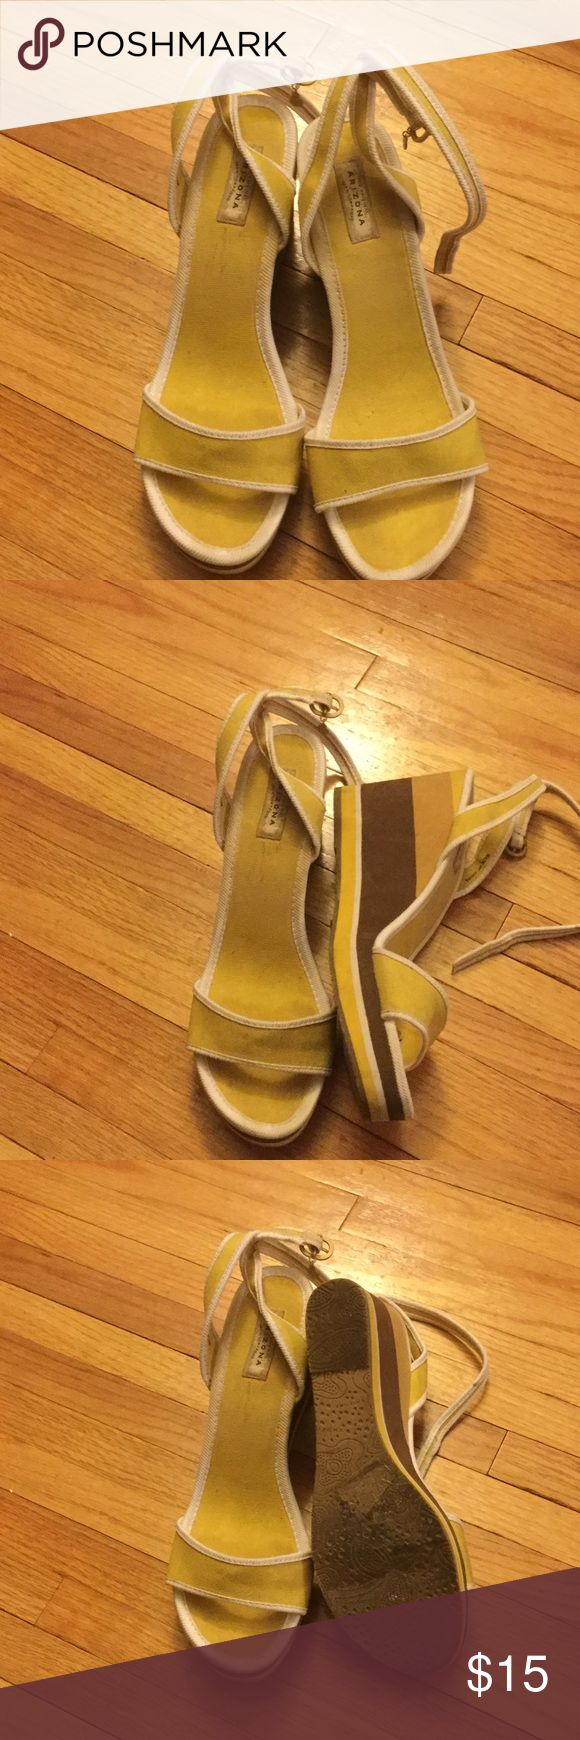 Cute Spring Wedges Cute yellow and brown wedges. US size: 10 with a 4 inch heel. Perfect bright heels for the warm weather. In gently used condition and from a smoke free home Arizona Jean Company Shoes Wedges